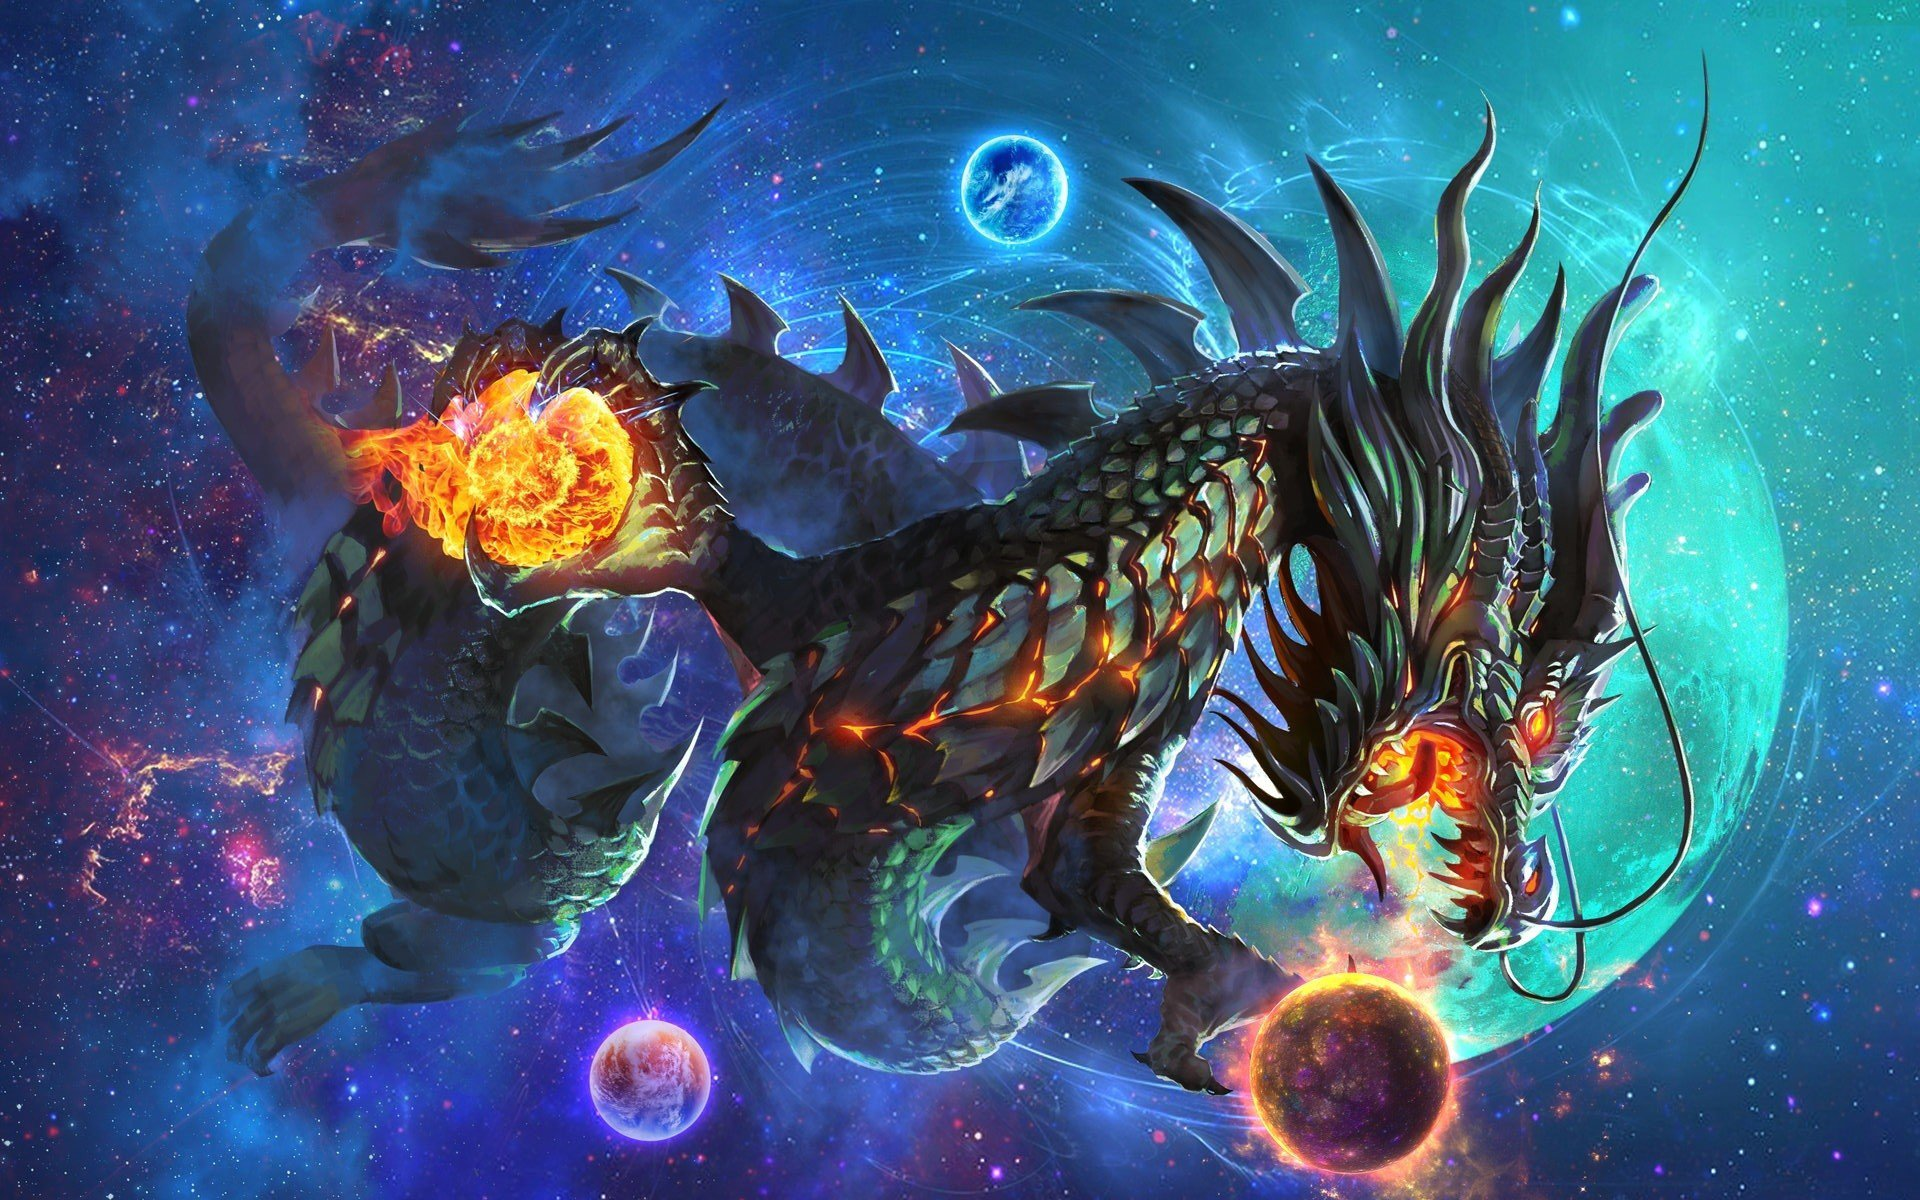 Dragon hd wallpaper background image 1920x1200 id - Dragon wallpaper hd for pc ...